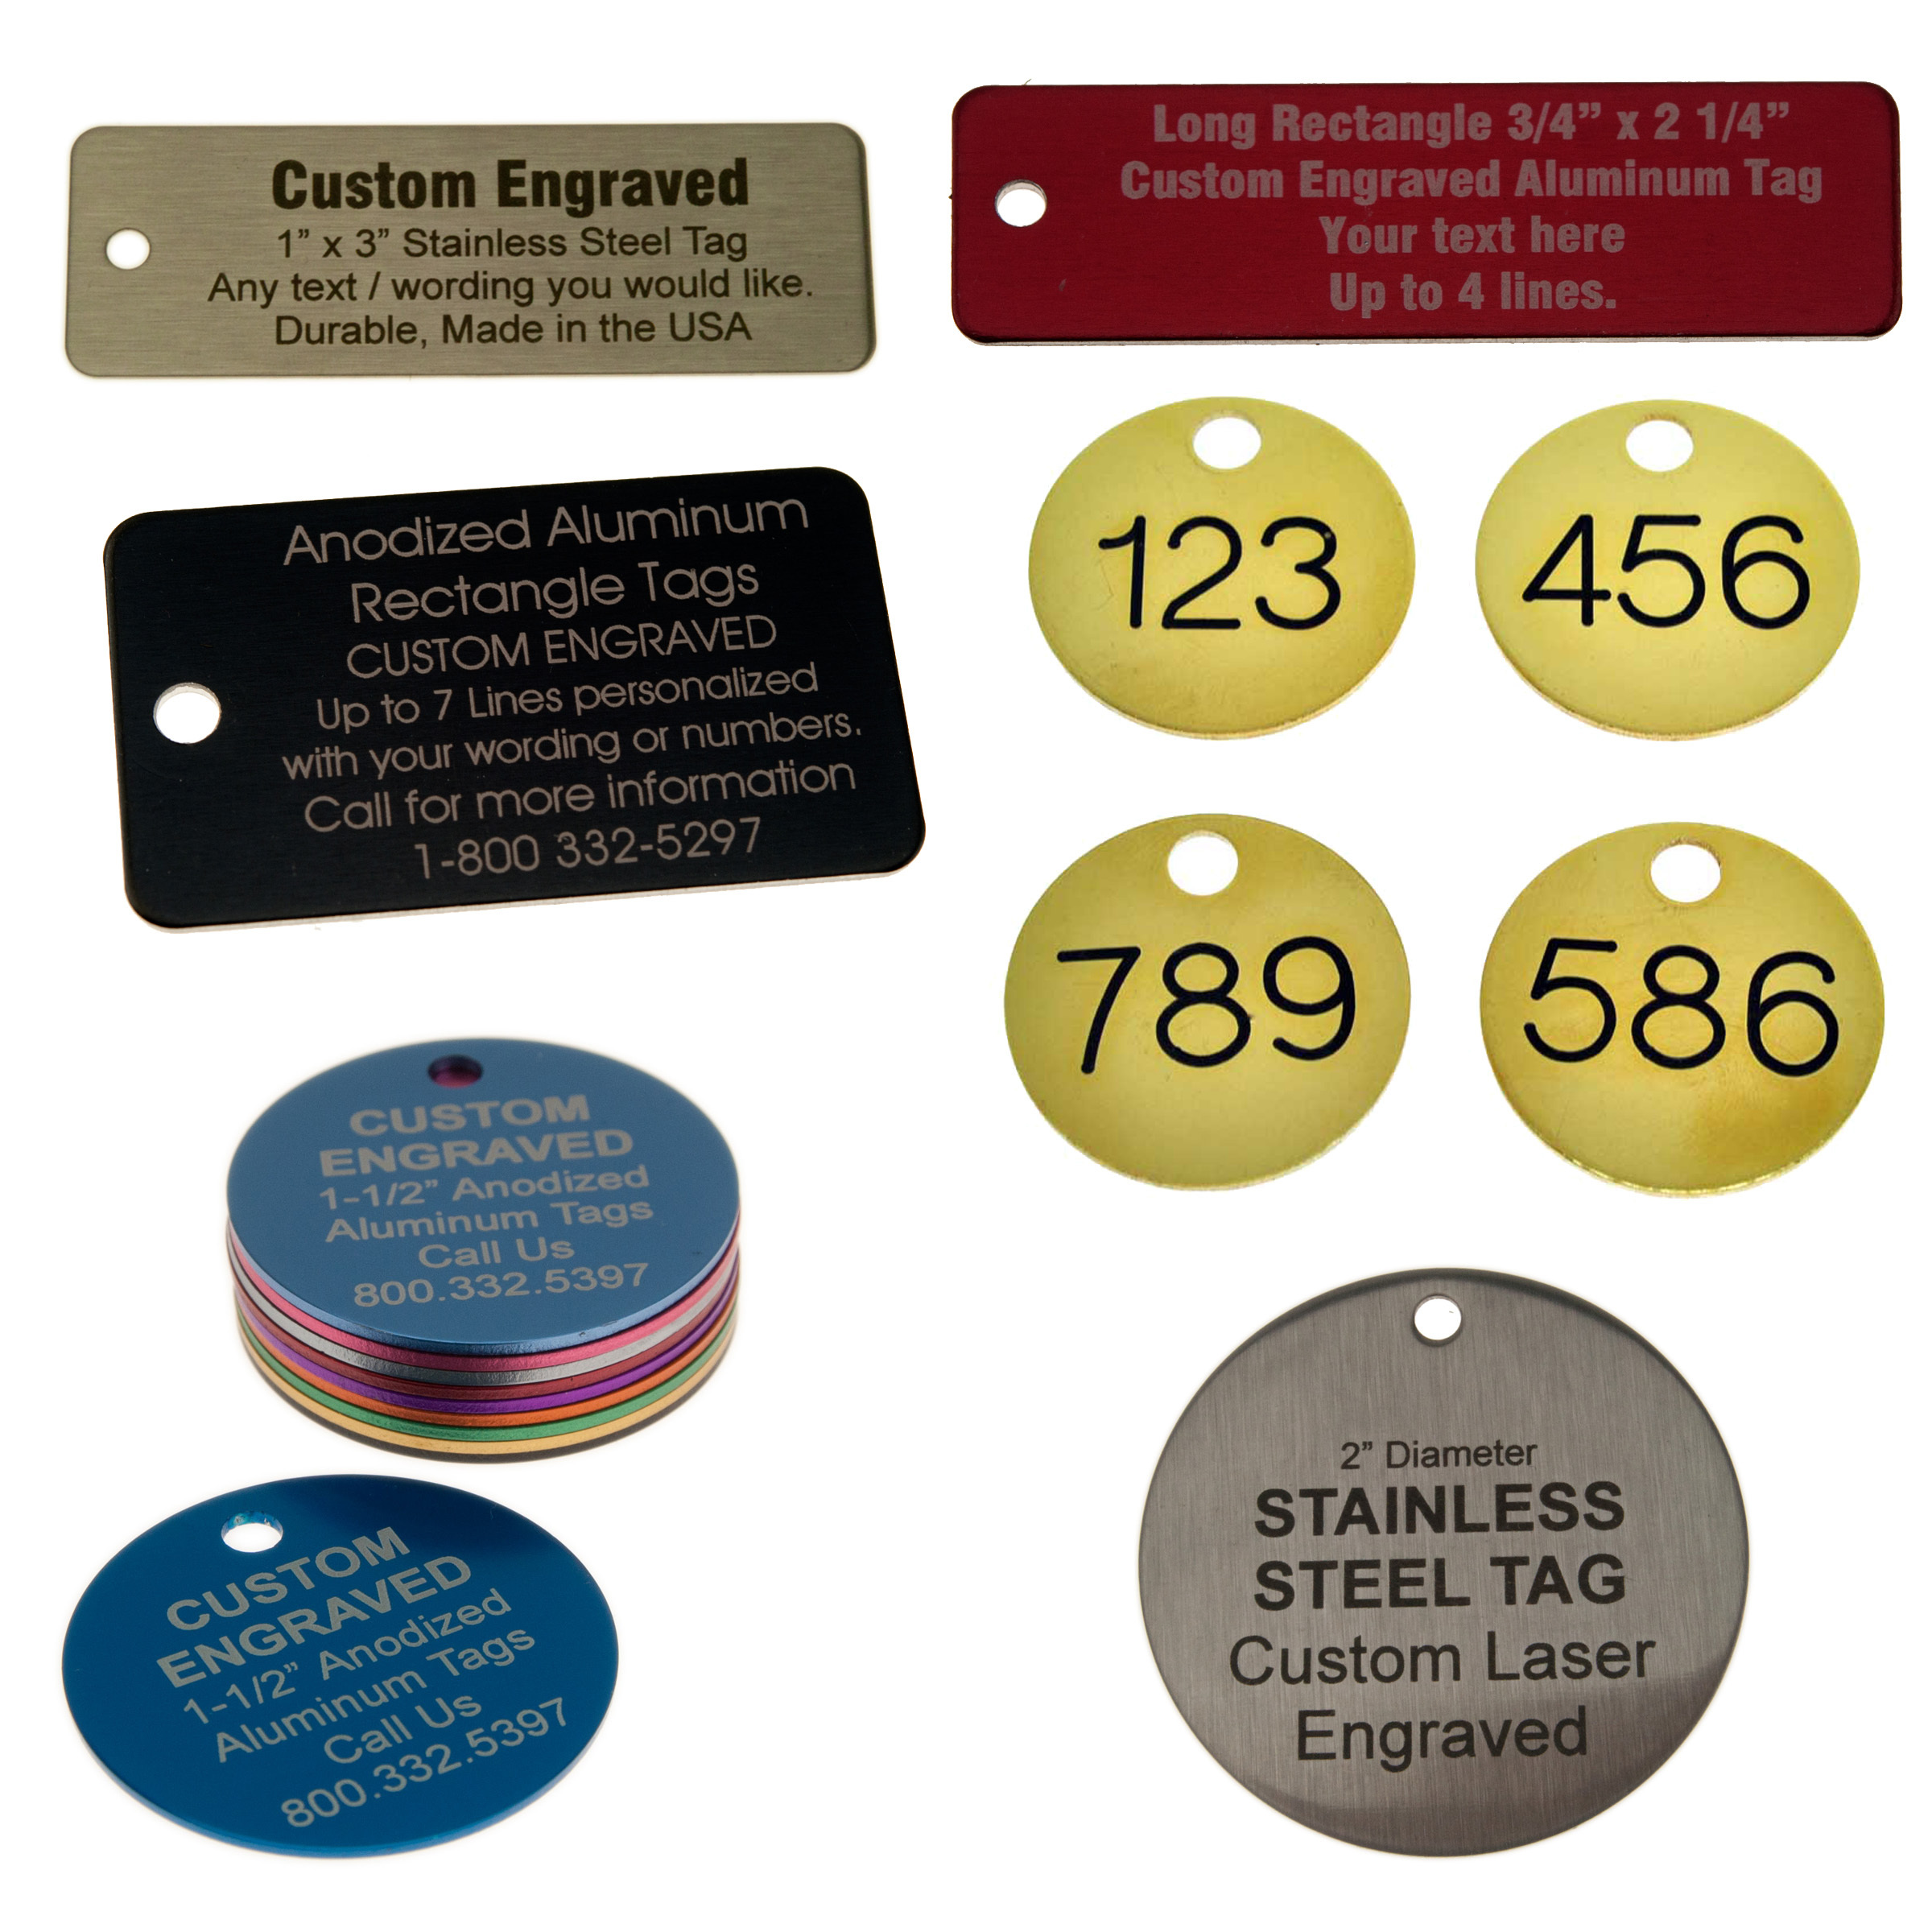 Brass, Stainless and Aluminum Tags